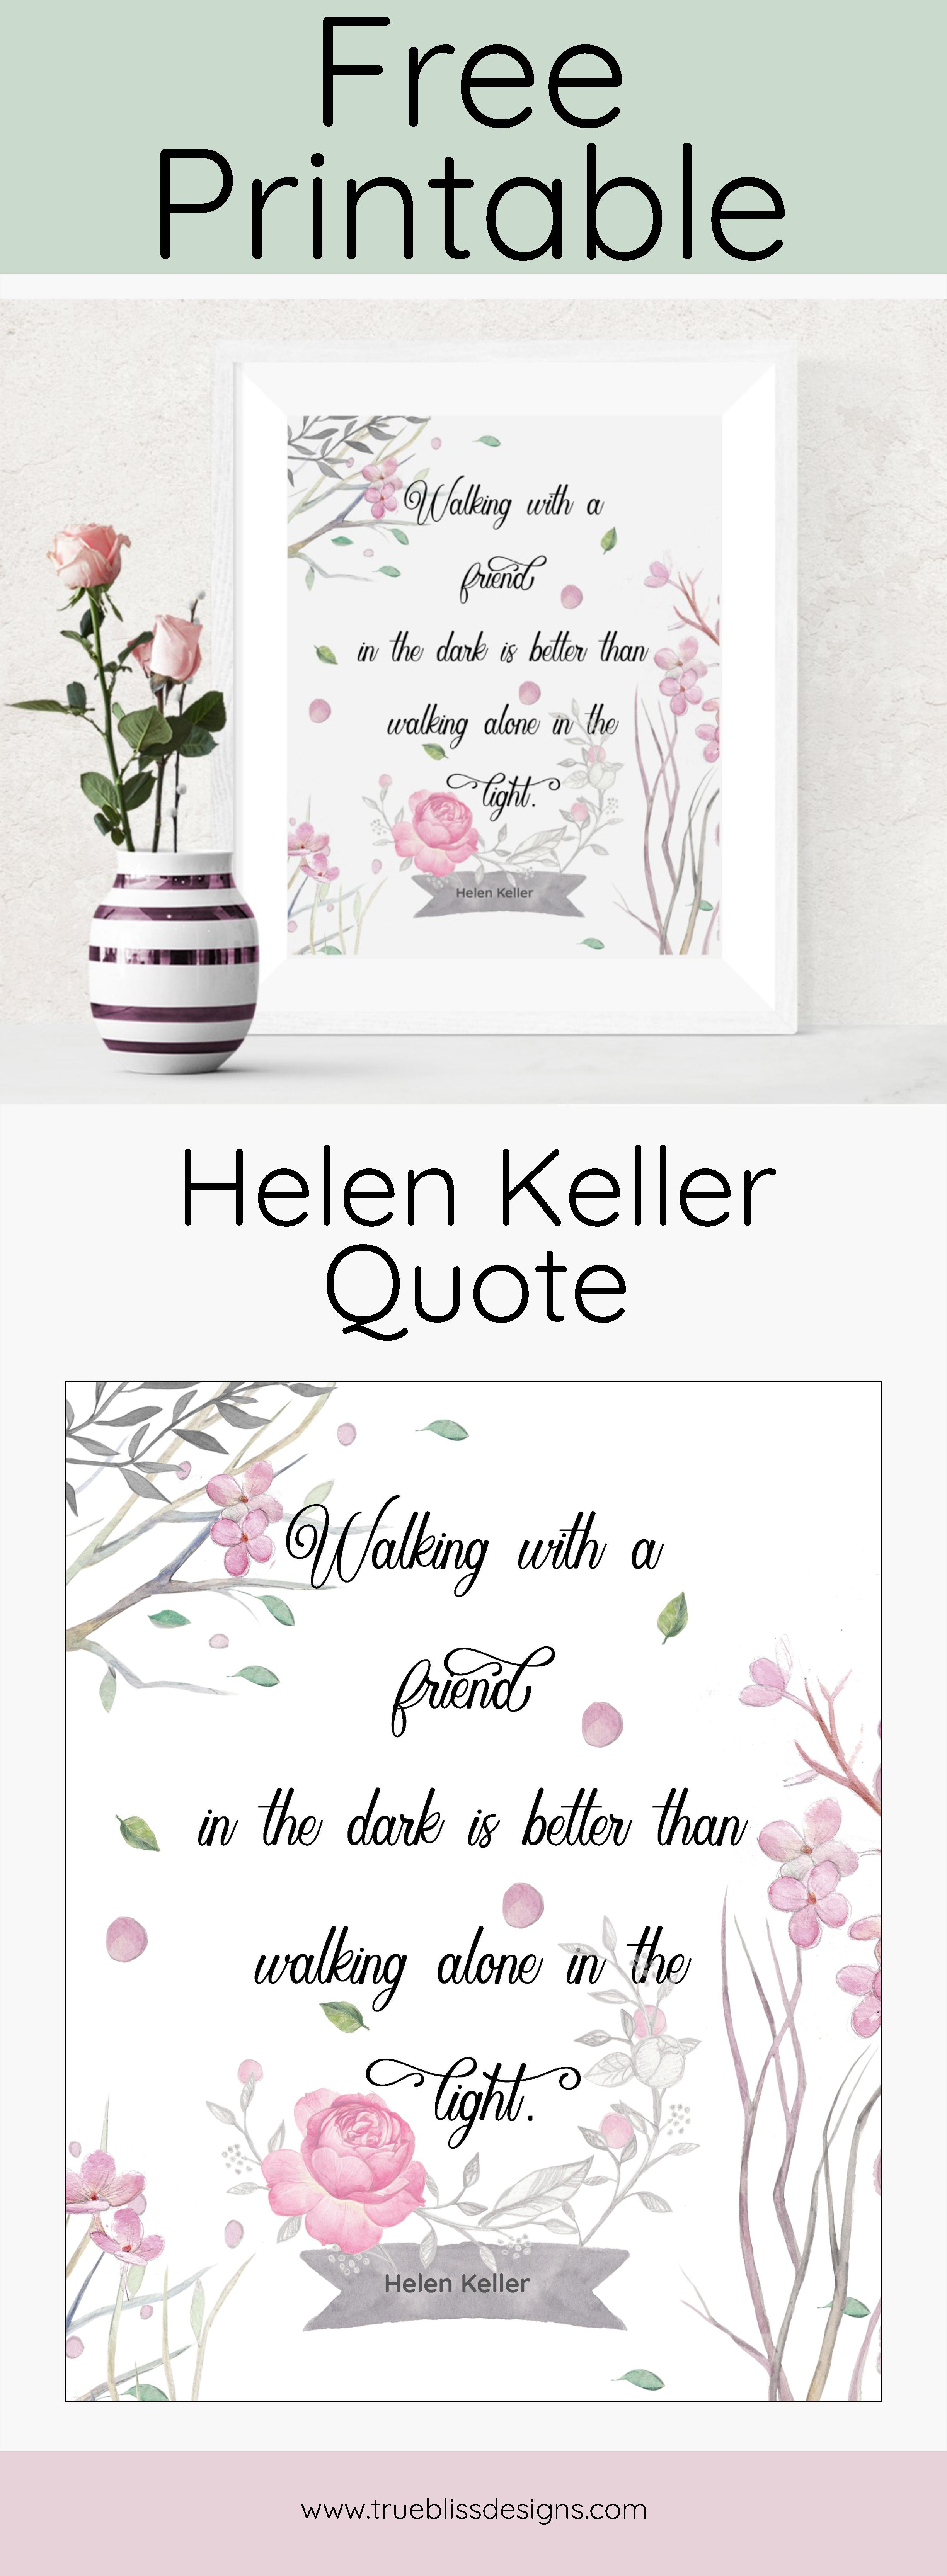 Helen Keller - Friendship Quote - Pinterest - True Bliss Designs